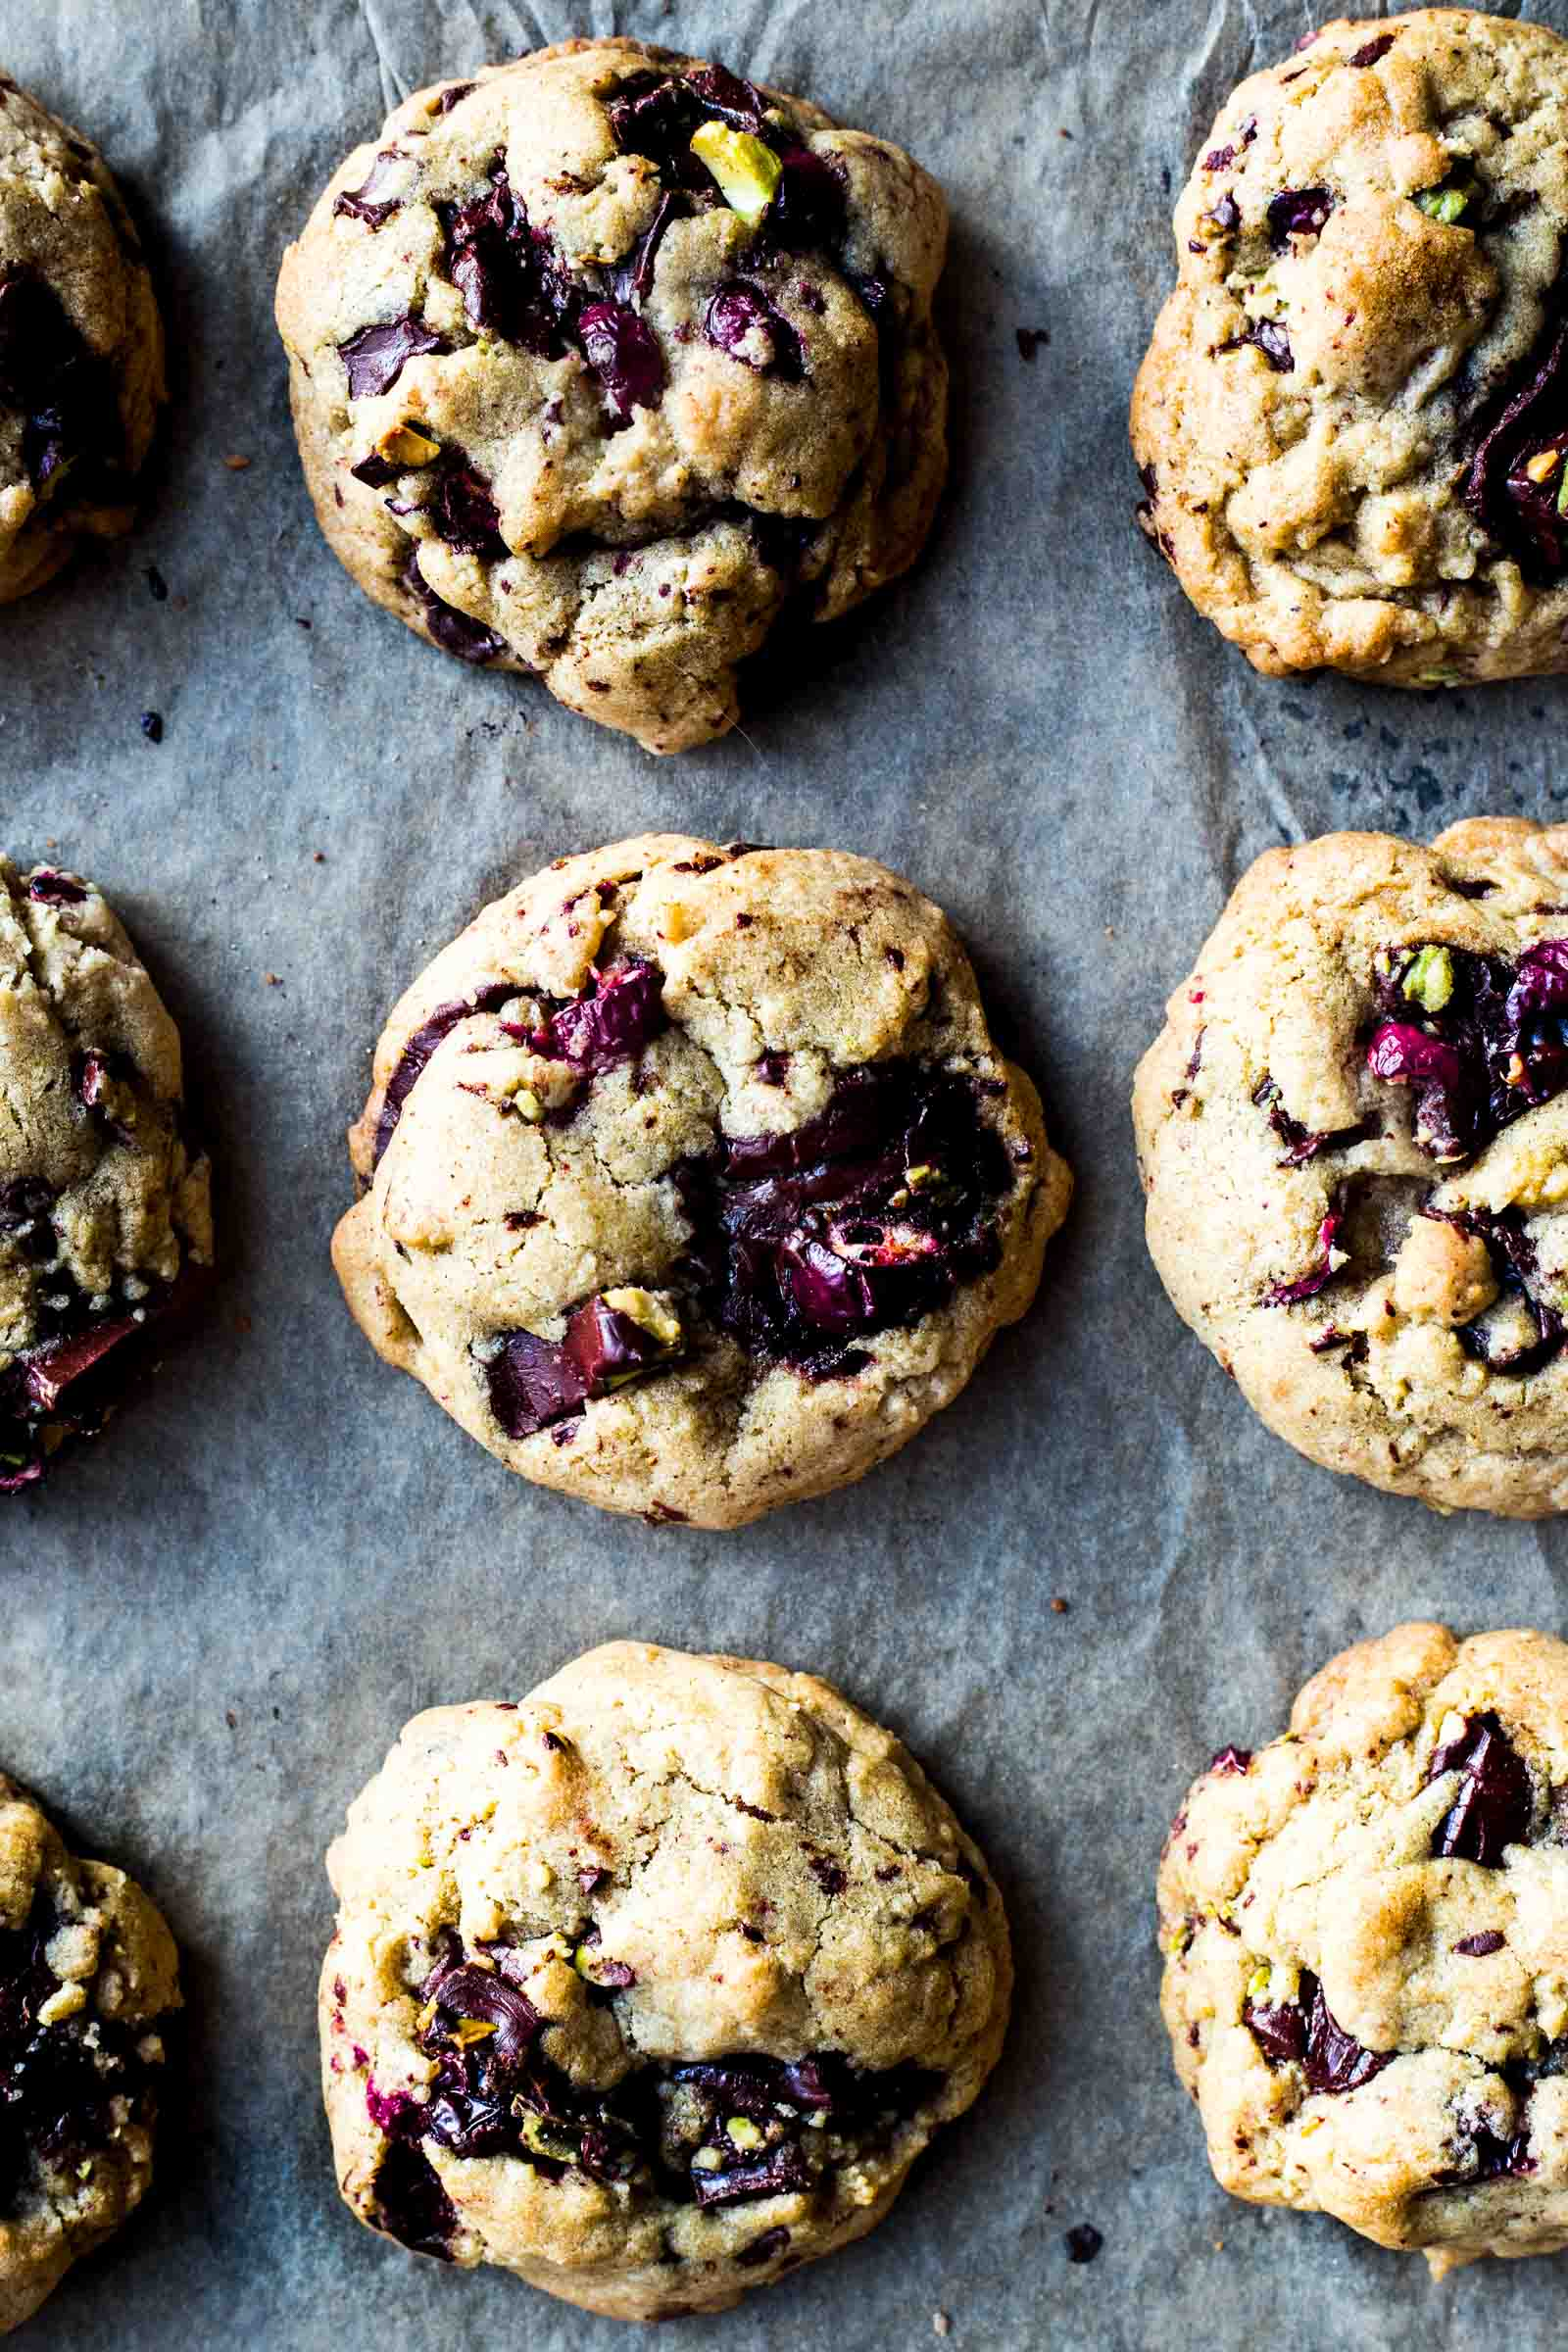 Chocolate & Cranberry Bark Coconut Oil Cookies - Dishing Up the Dirt